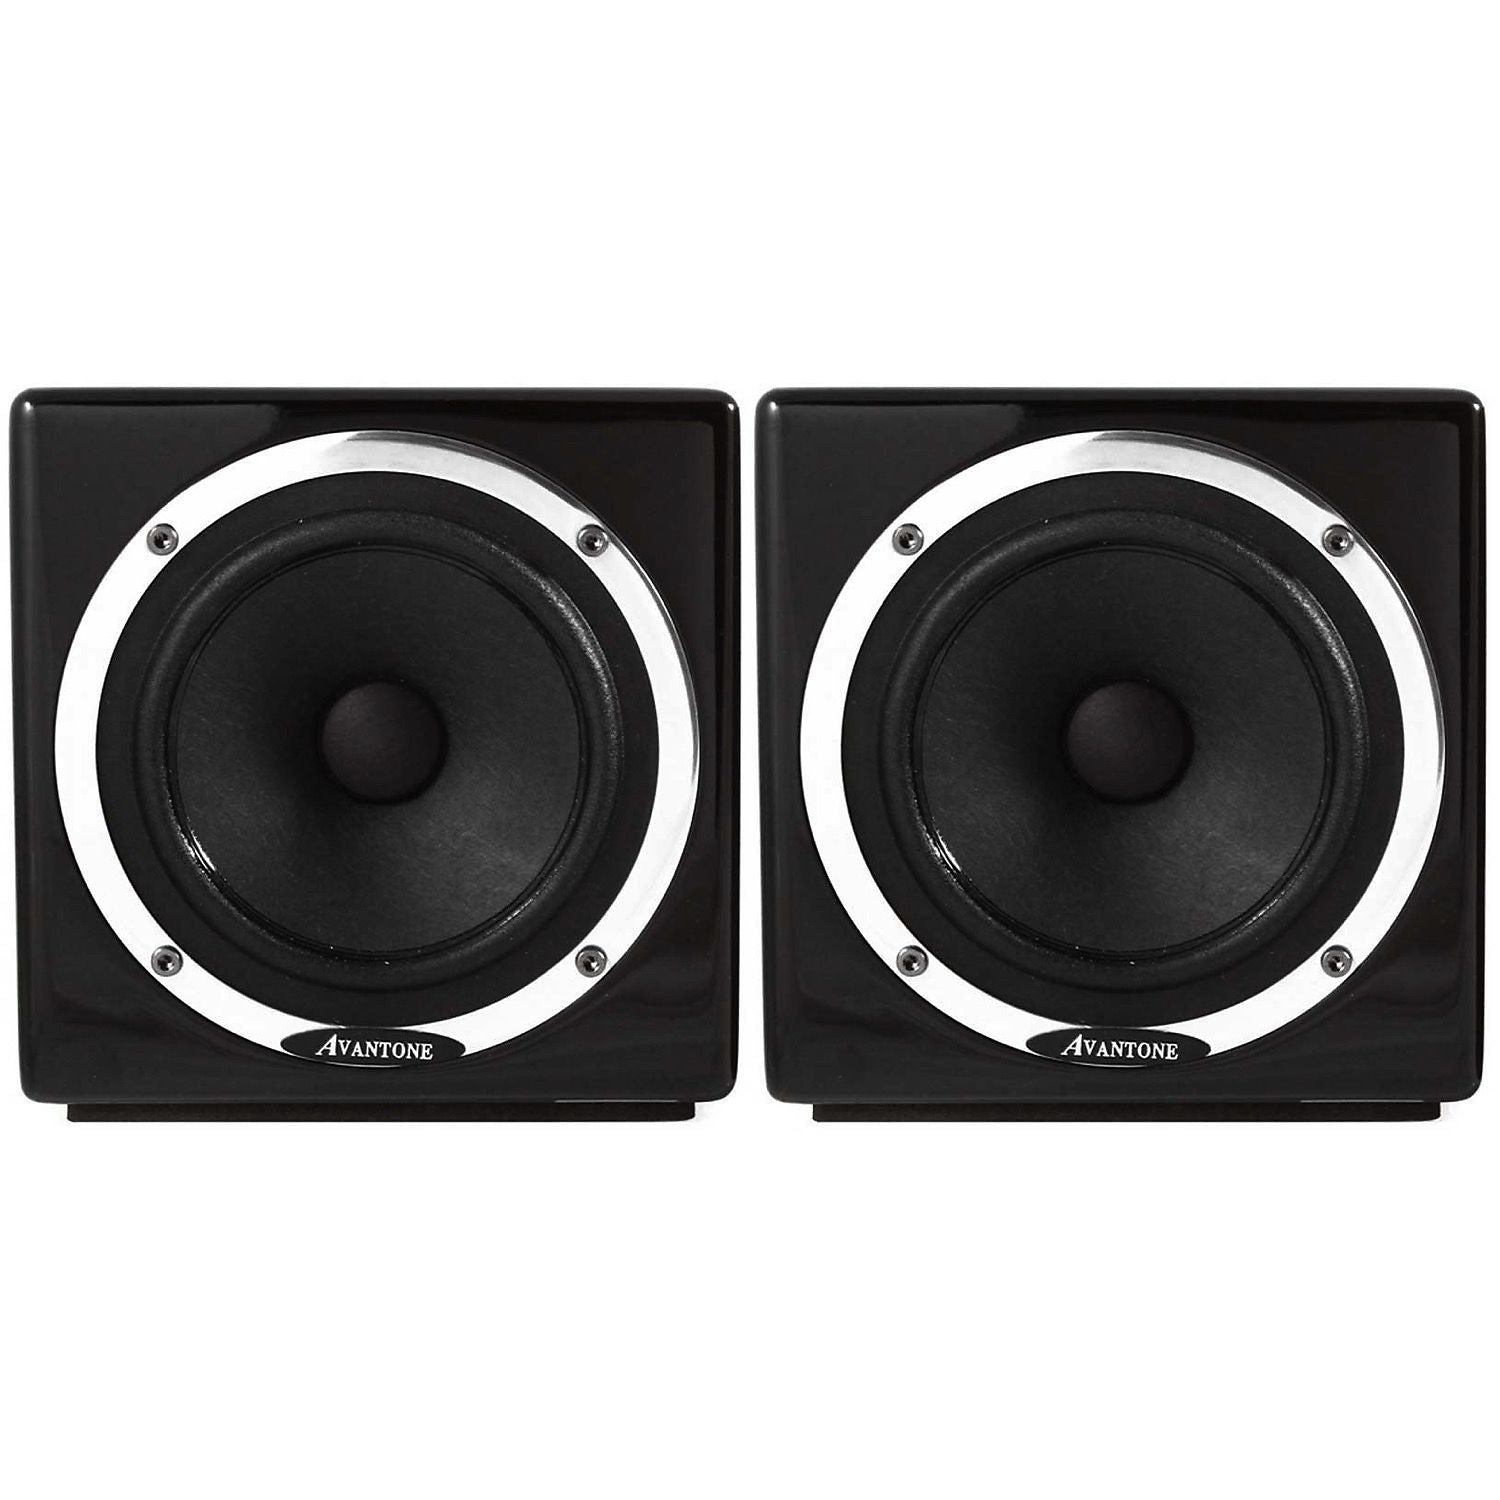 Avantone MixCubes Active Studio Monitor (60 Watts, 1x5.25 Inch), Black, Pair